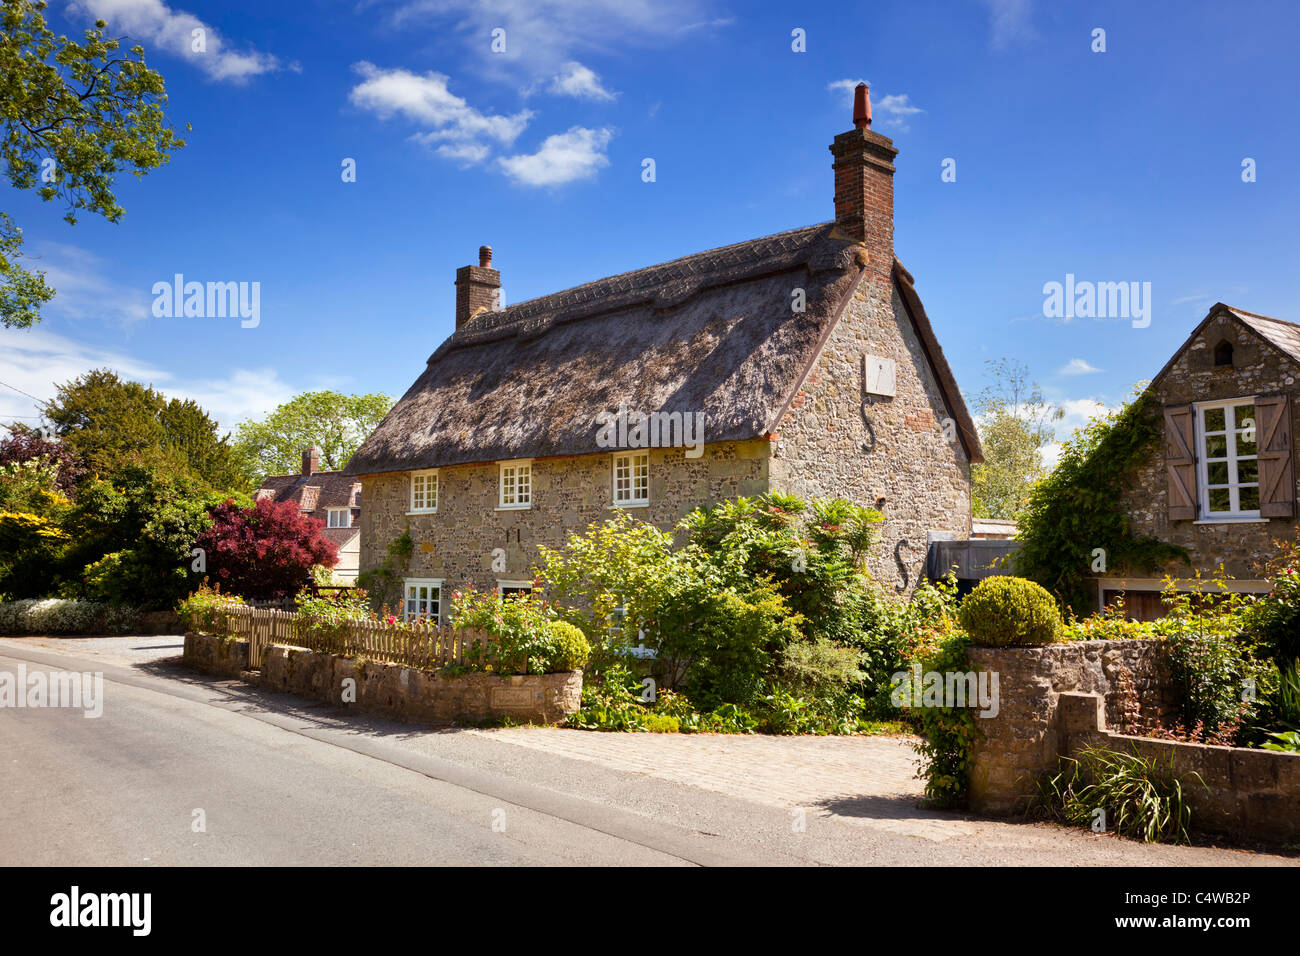 Thatched Cottage country house in the pretty English village of Ashmore, Dorset, England, UK - Stock Image